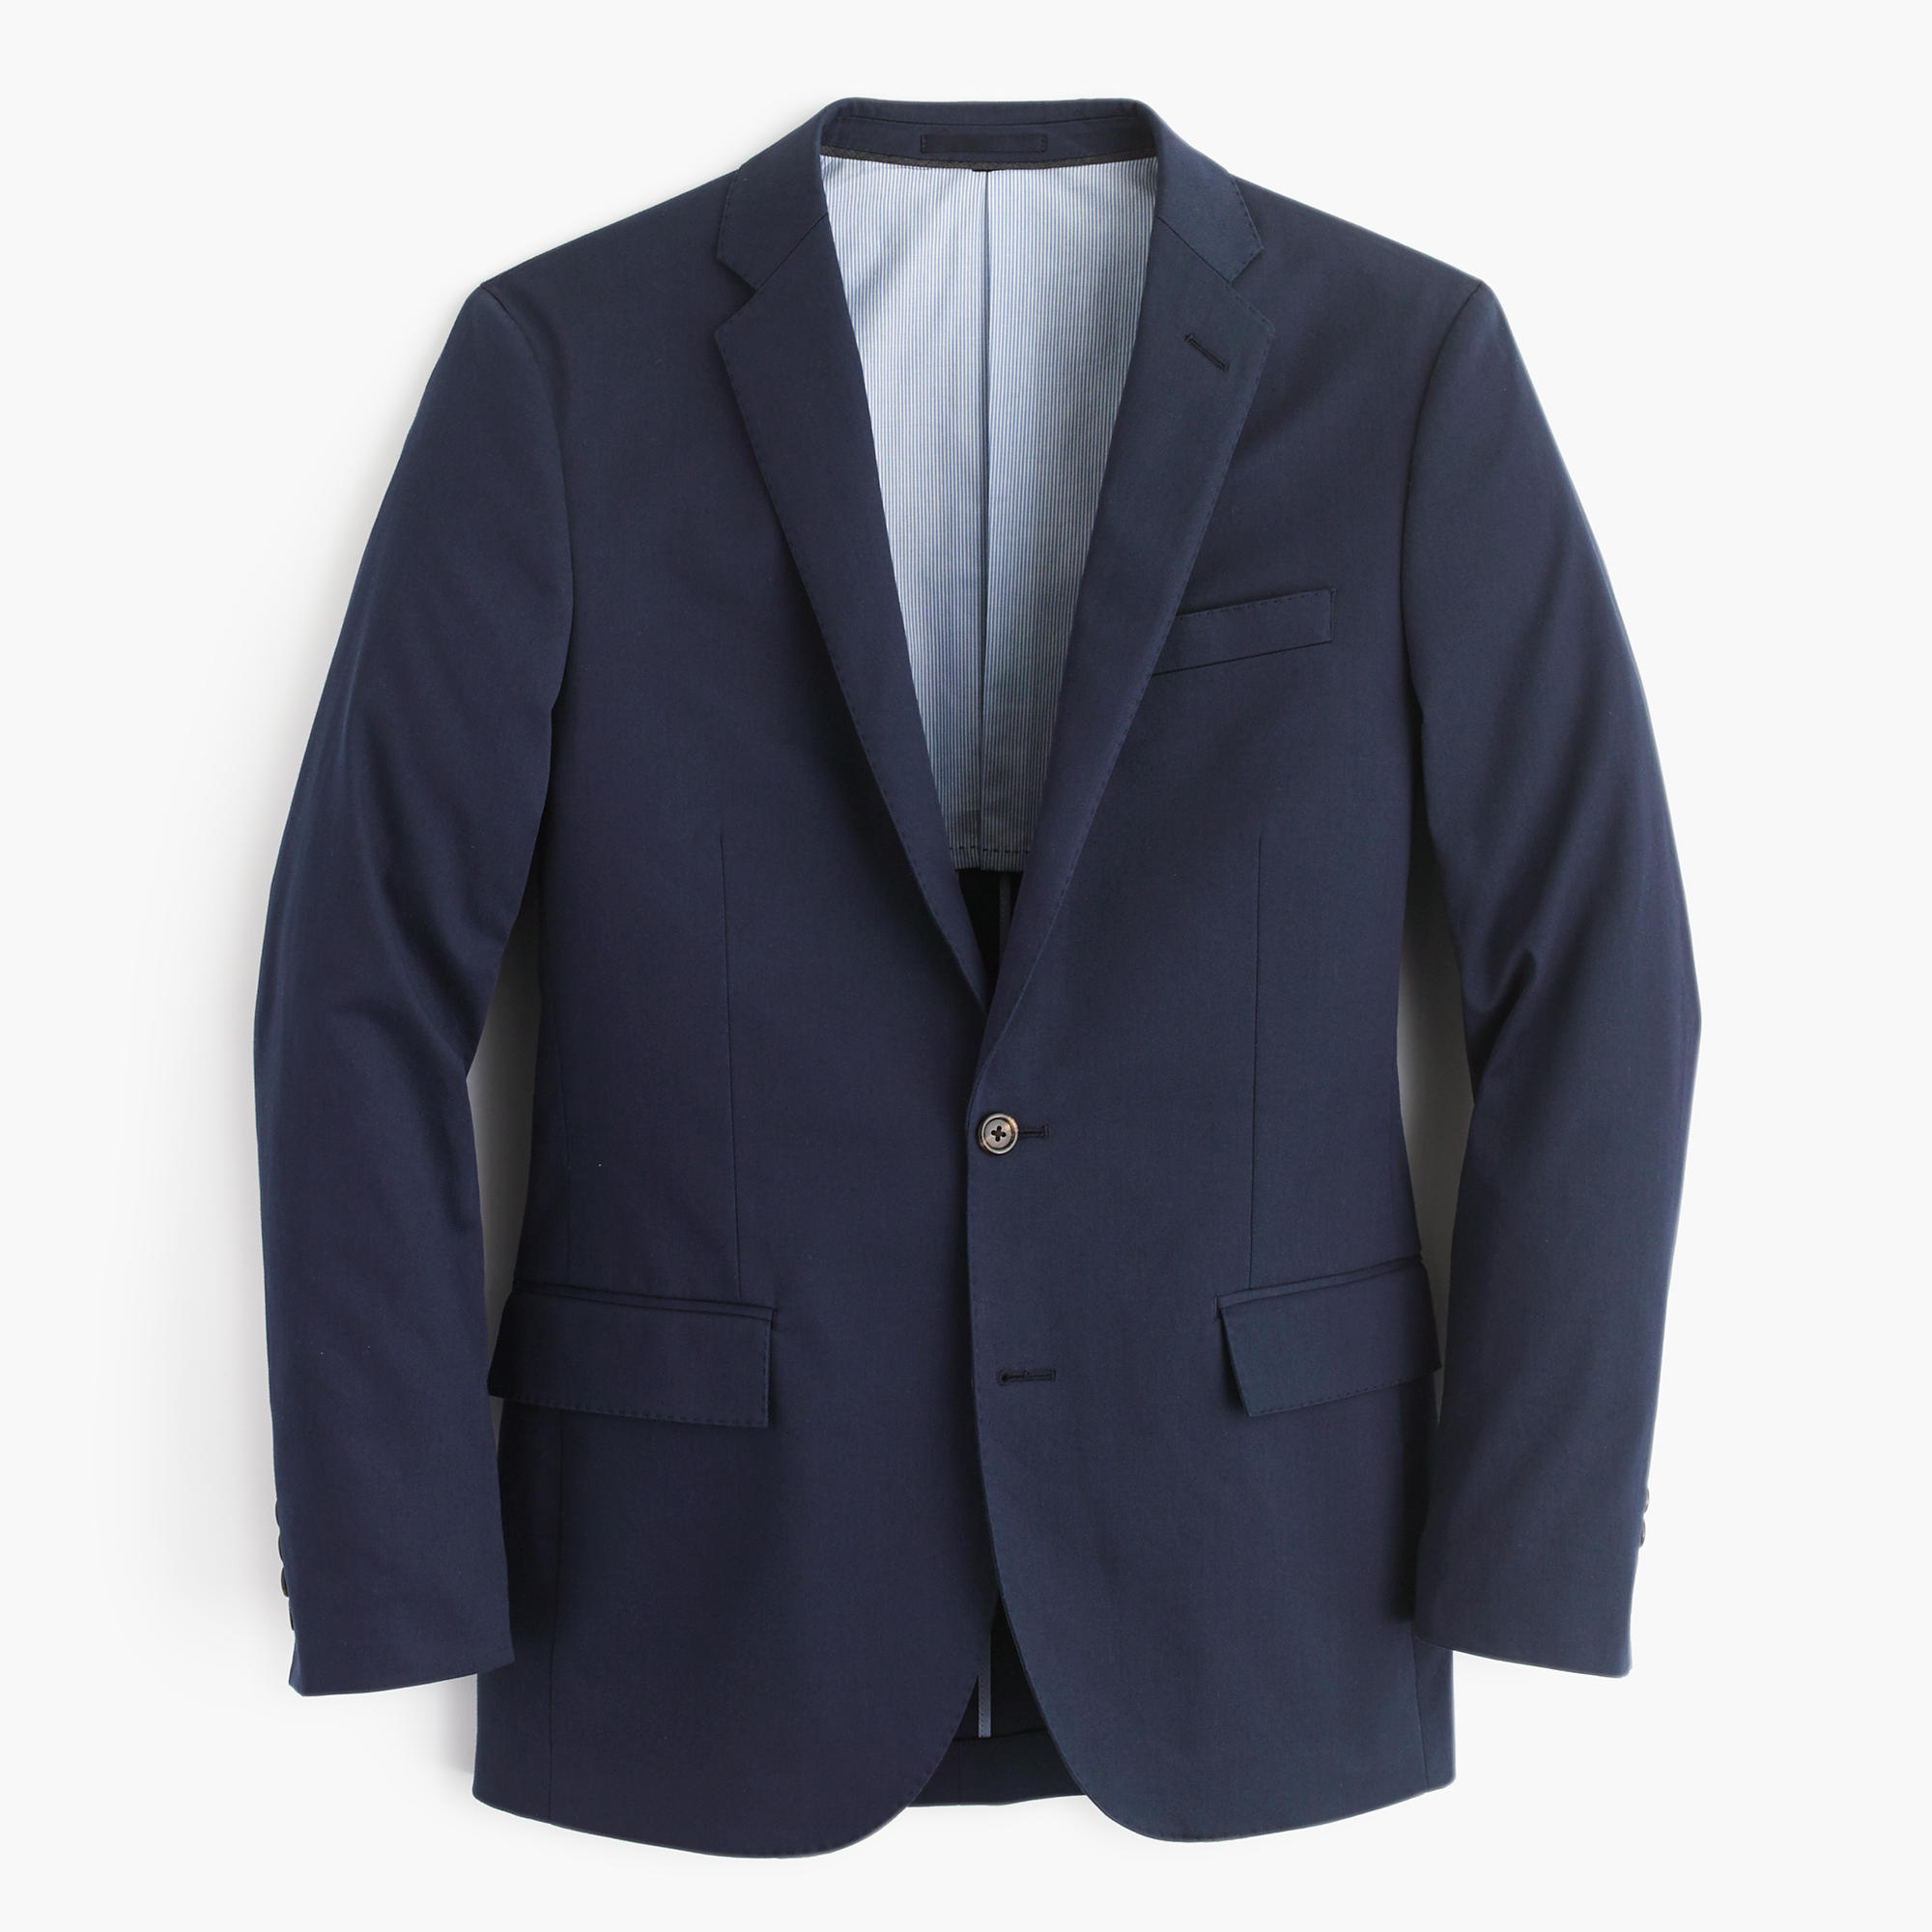 Ludlow suit jacket in navy Italian stretch chino : Men suits ...